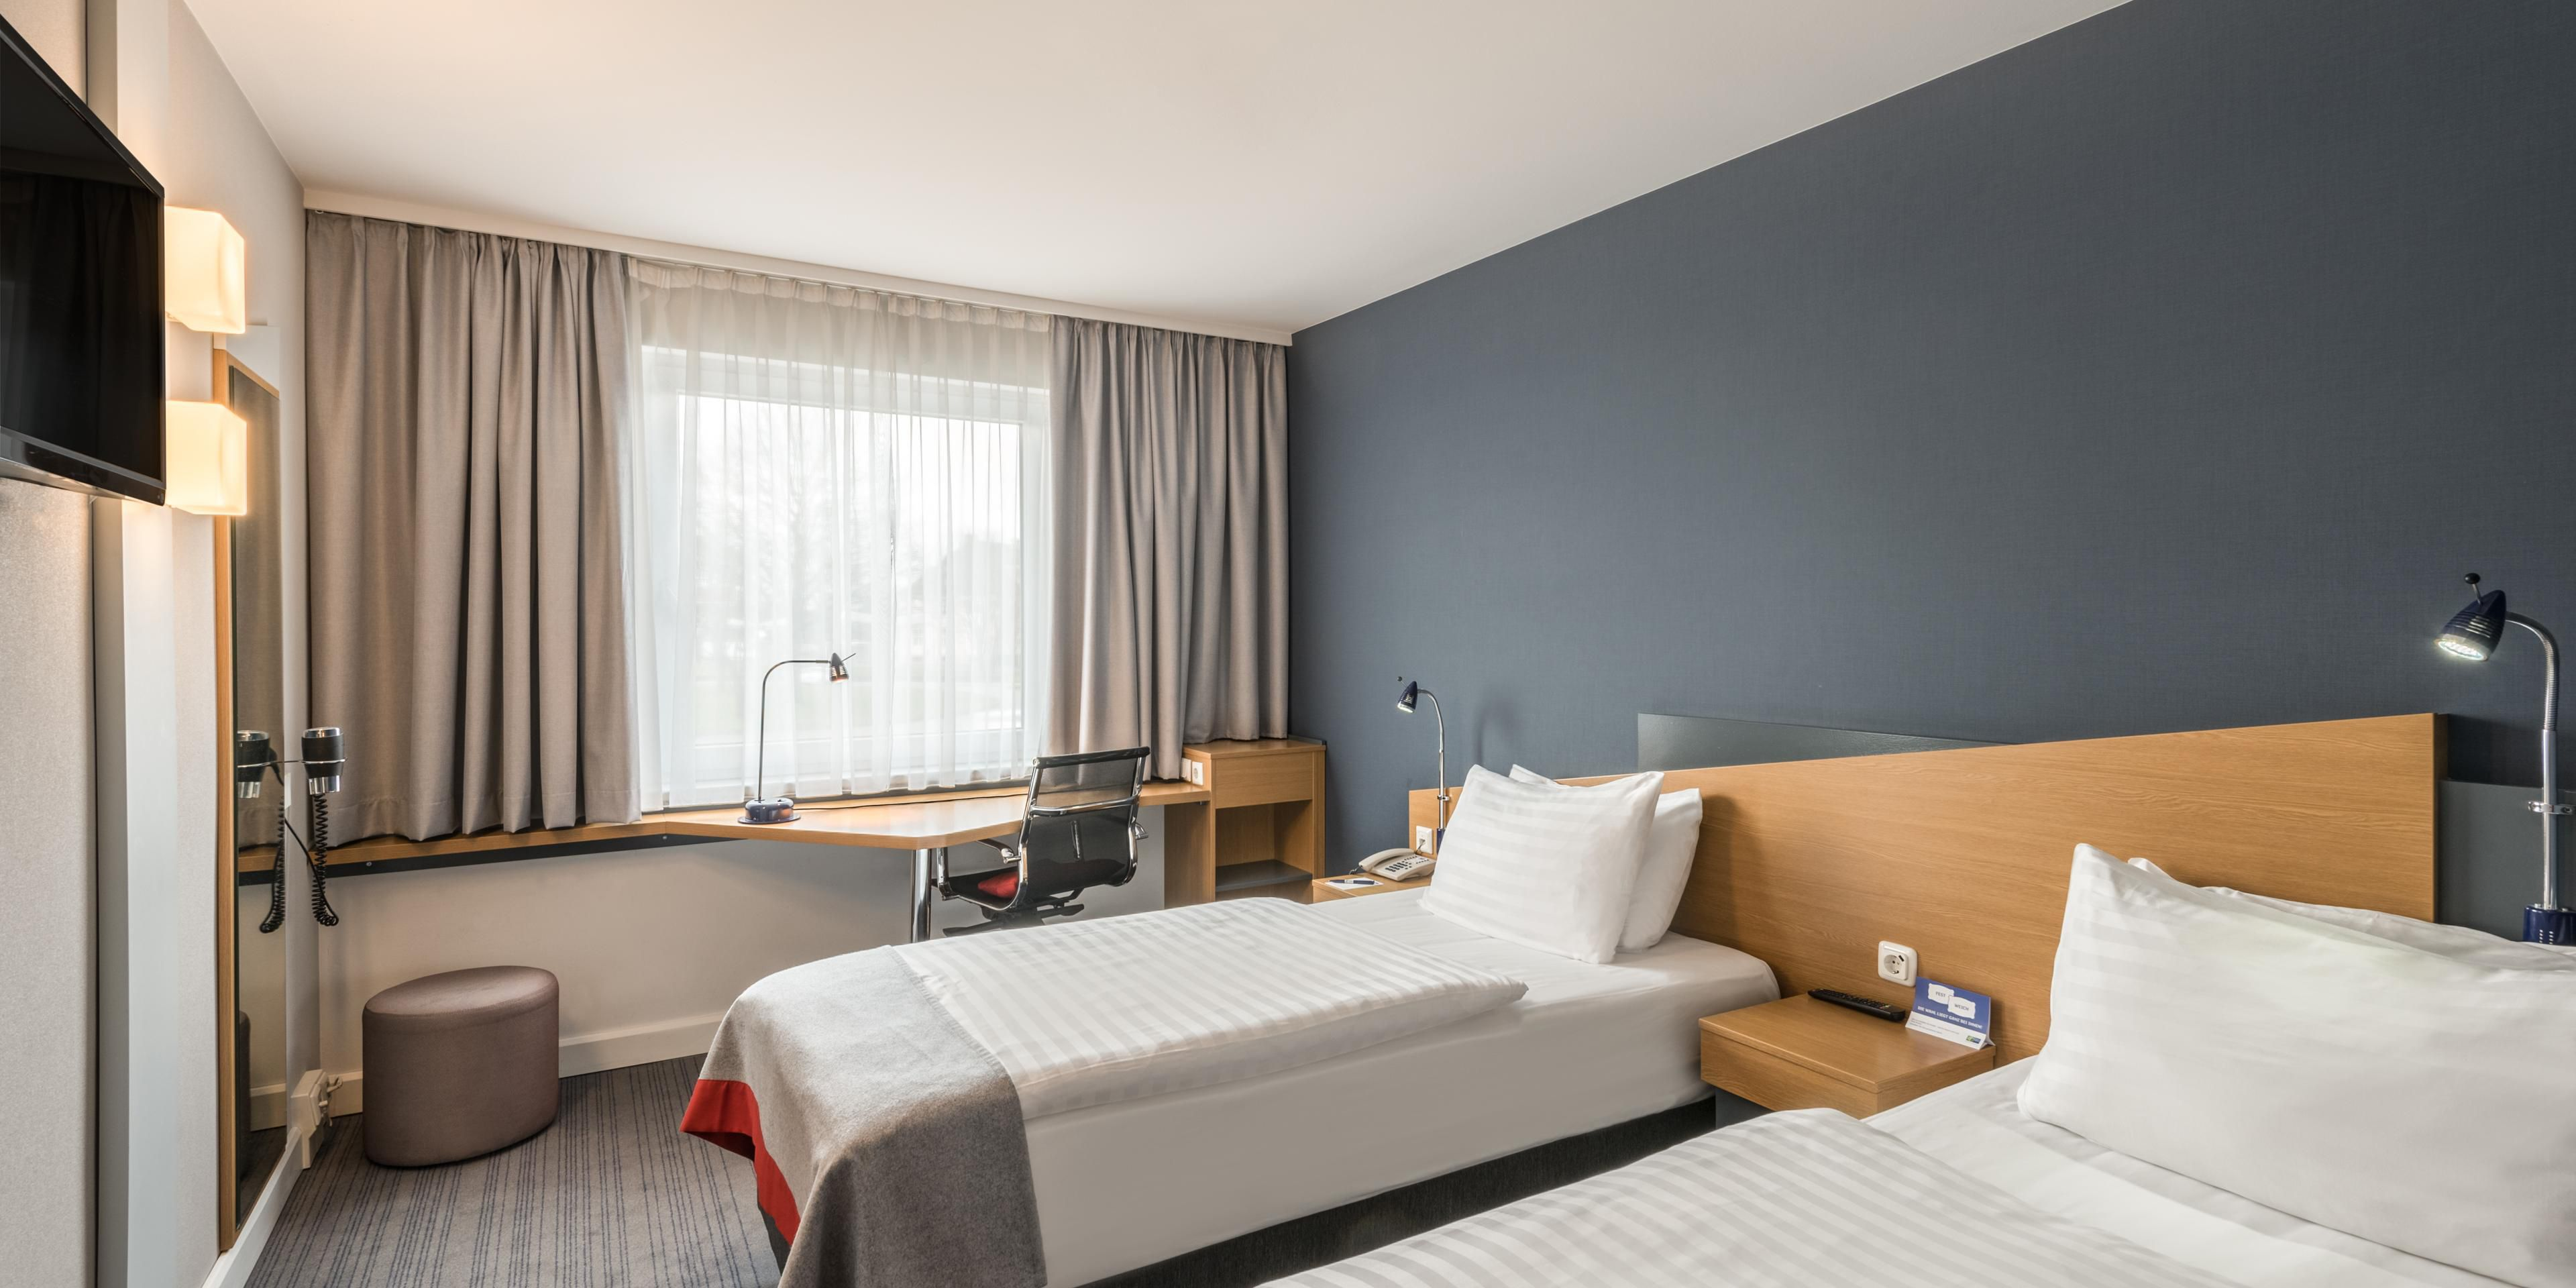 Schon Holiday Inn Express Cologne 5490403304 2x1